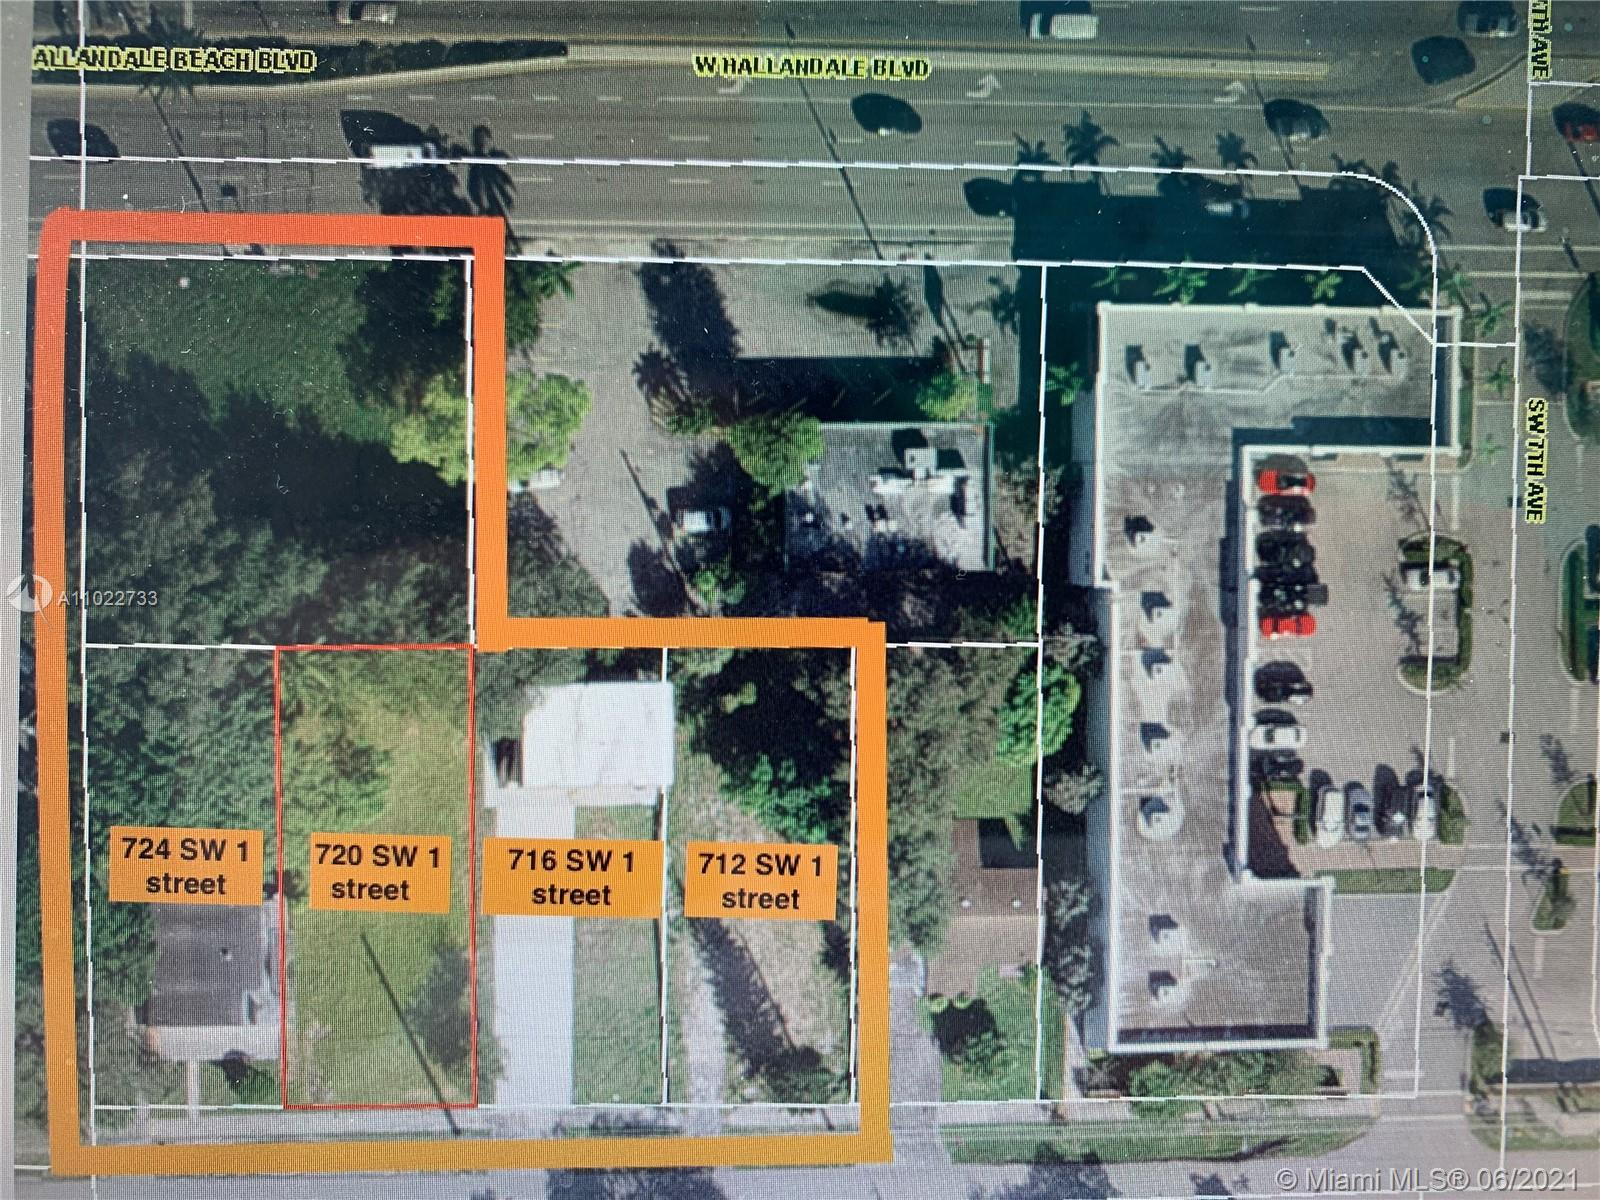 2 story 2 units building and Commercial lot, cab be sold as a whole package 0.78 acres, 2 miles to the beach or Aventura Mall East of I95, possible to build up to 34 floors, Business General (B-G)  Commercial, residential multifamily or retail, you decide, Must be sold together with a lot next door. In case its sold as 6 lots package for a hotel development the price is $5M 10% deposit is a must at C.Serfaty Law office Call listing agent for more information